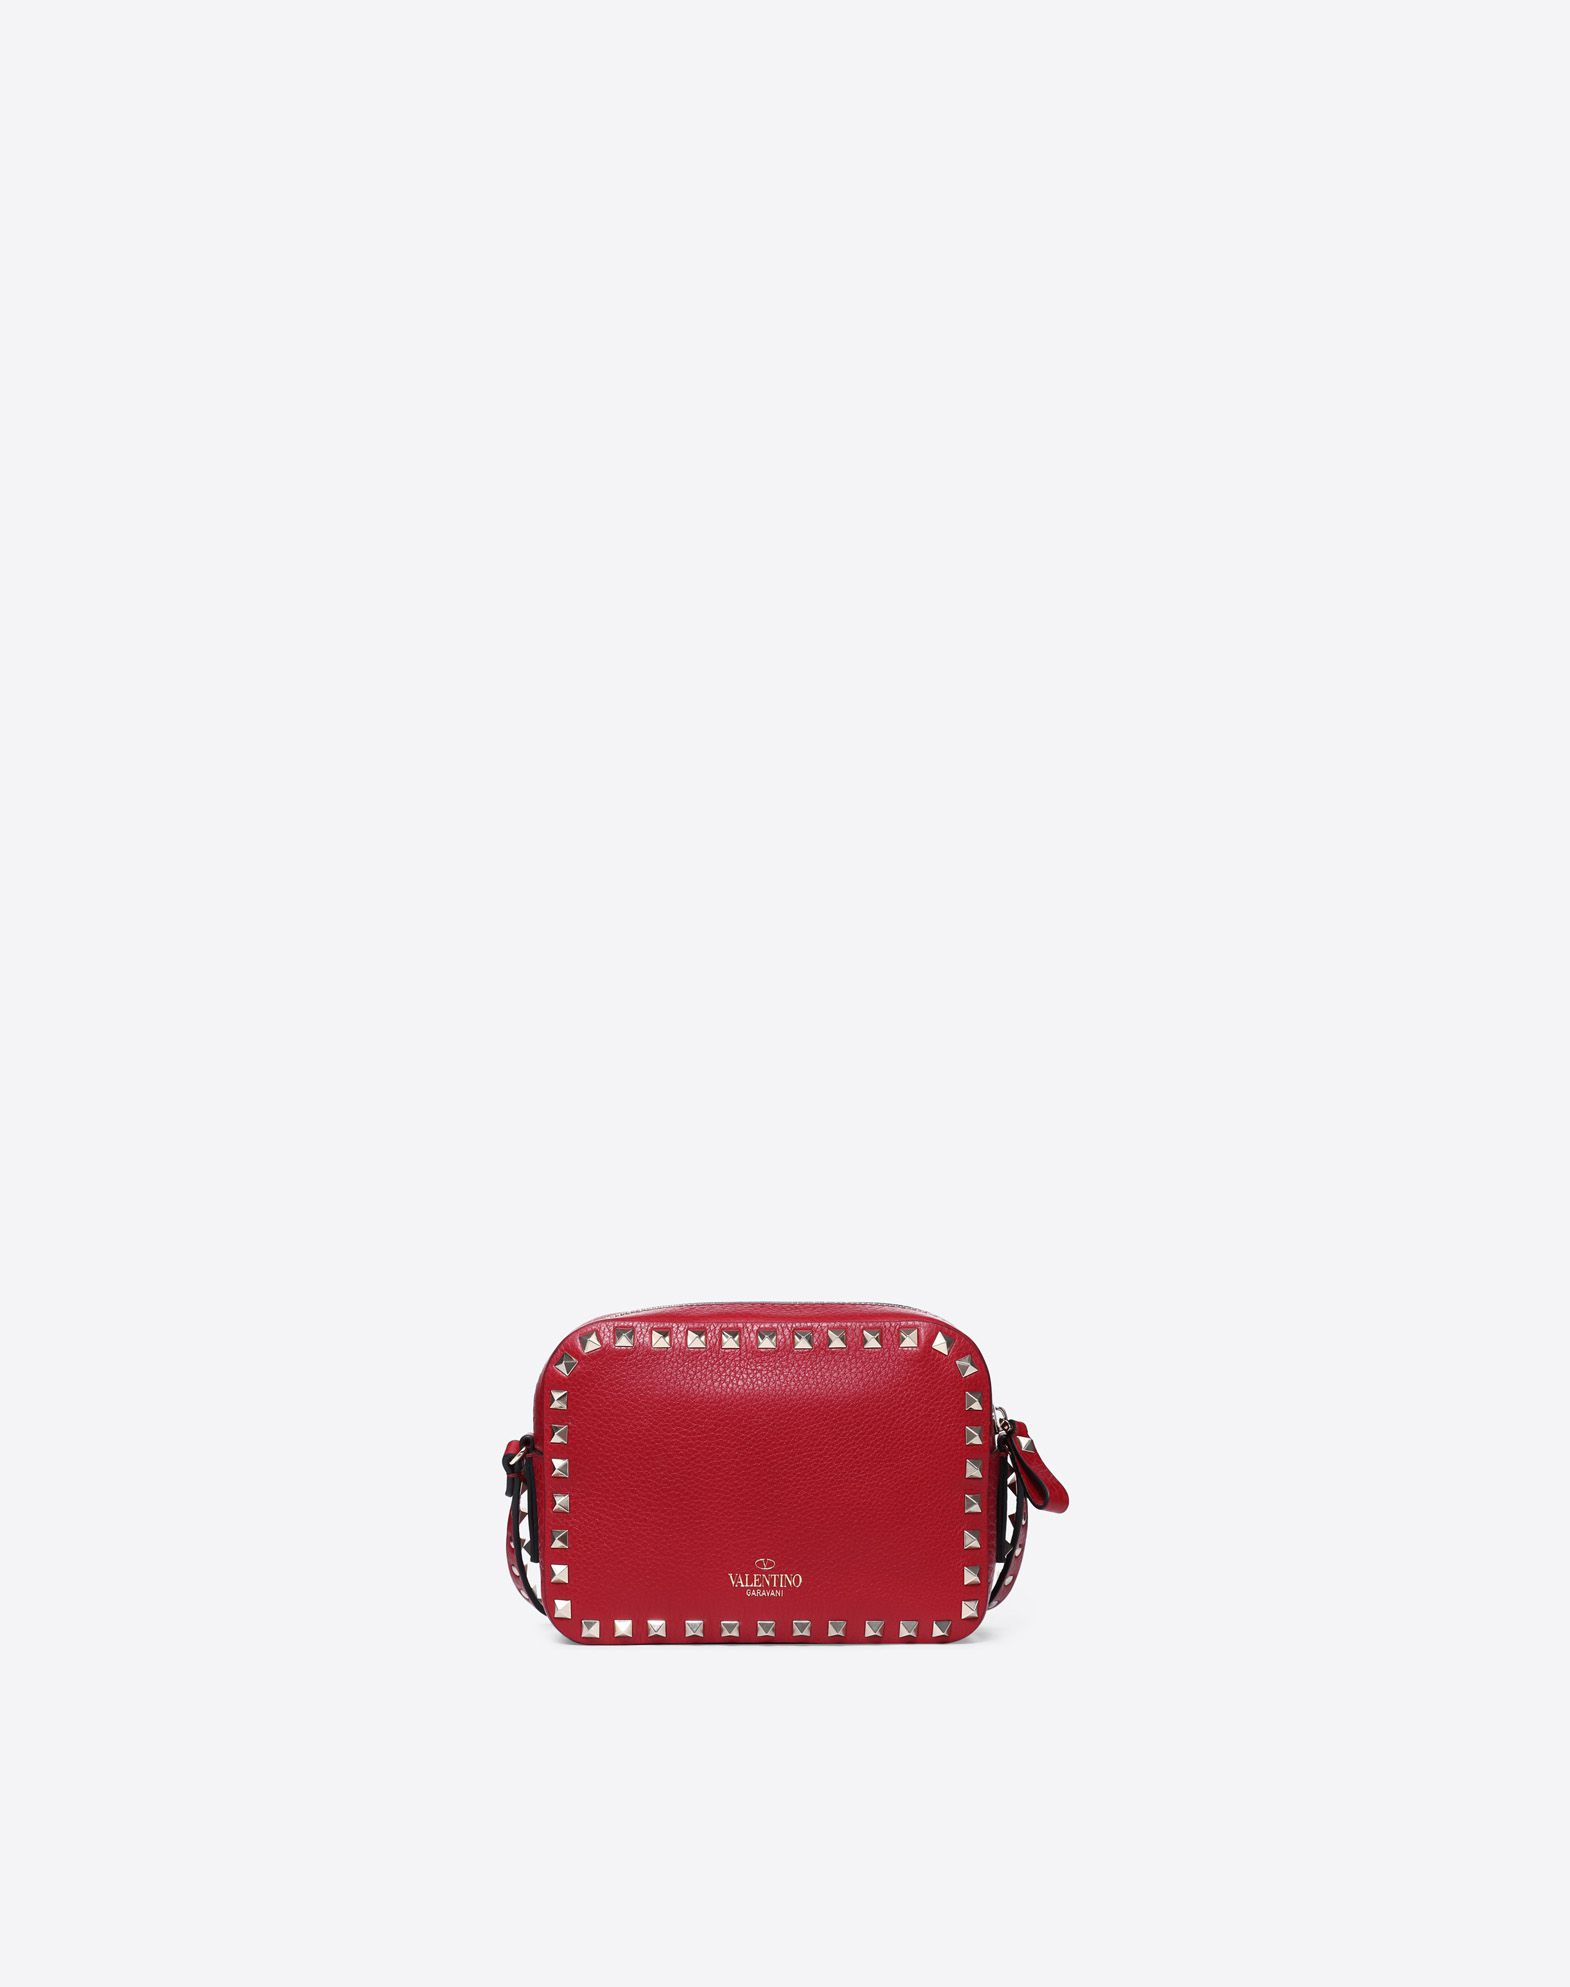 VALENTINO GARAVANI Rockstud Cross Body Bag CROSS BODY BAG D d